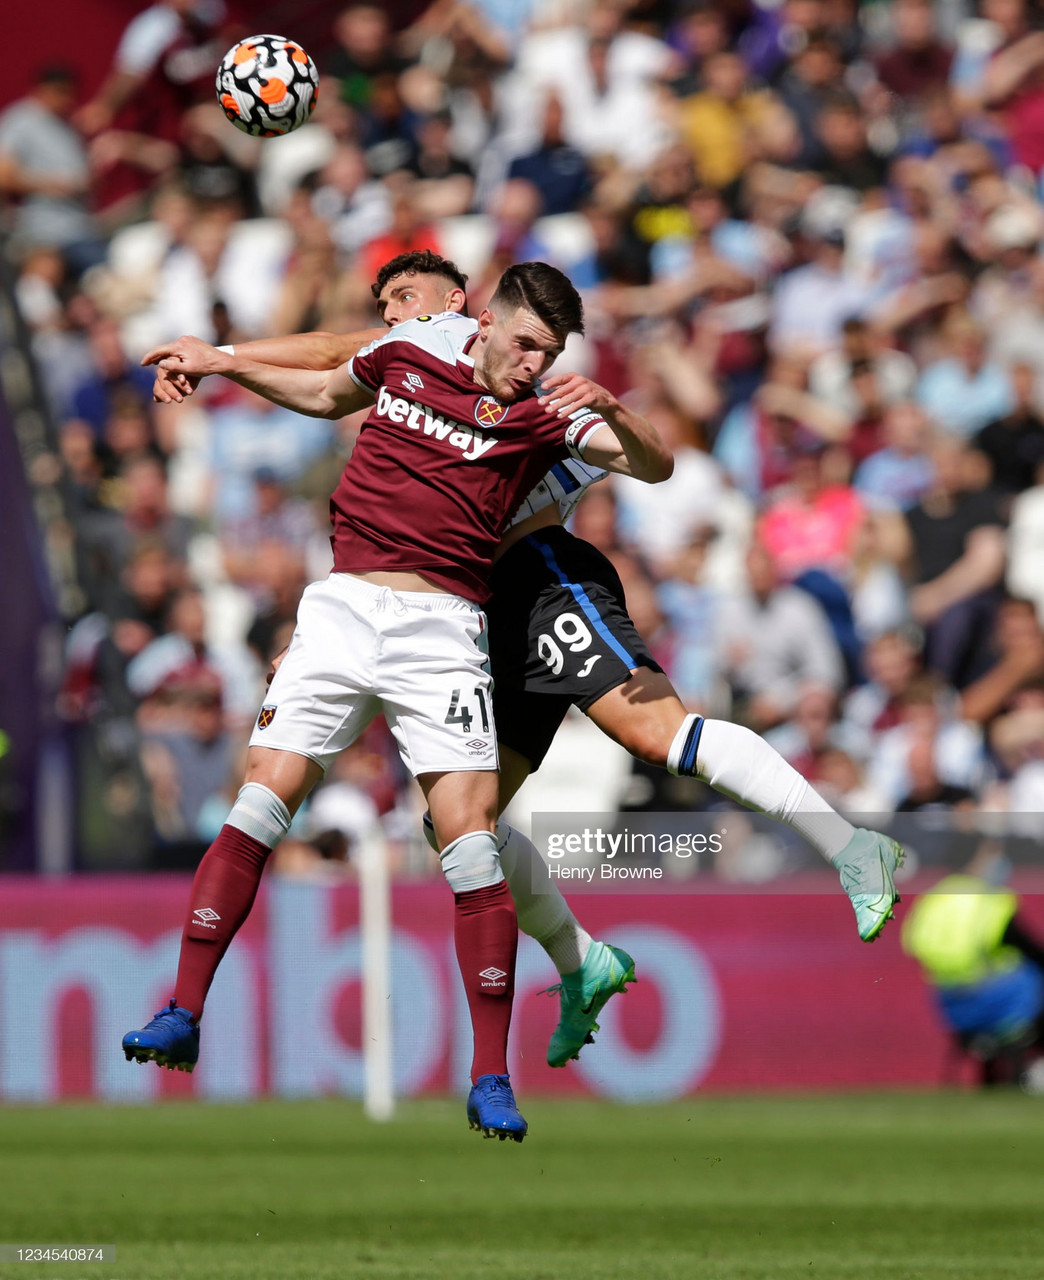 Betway Cup 2021 - West Ham United 2 - 0 Atalanta: Another Benrahma masterclass gives Hammers cup win